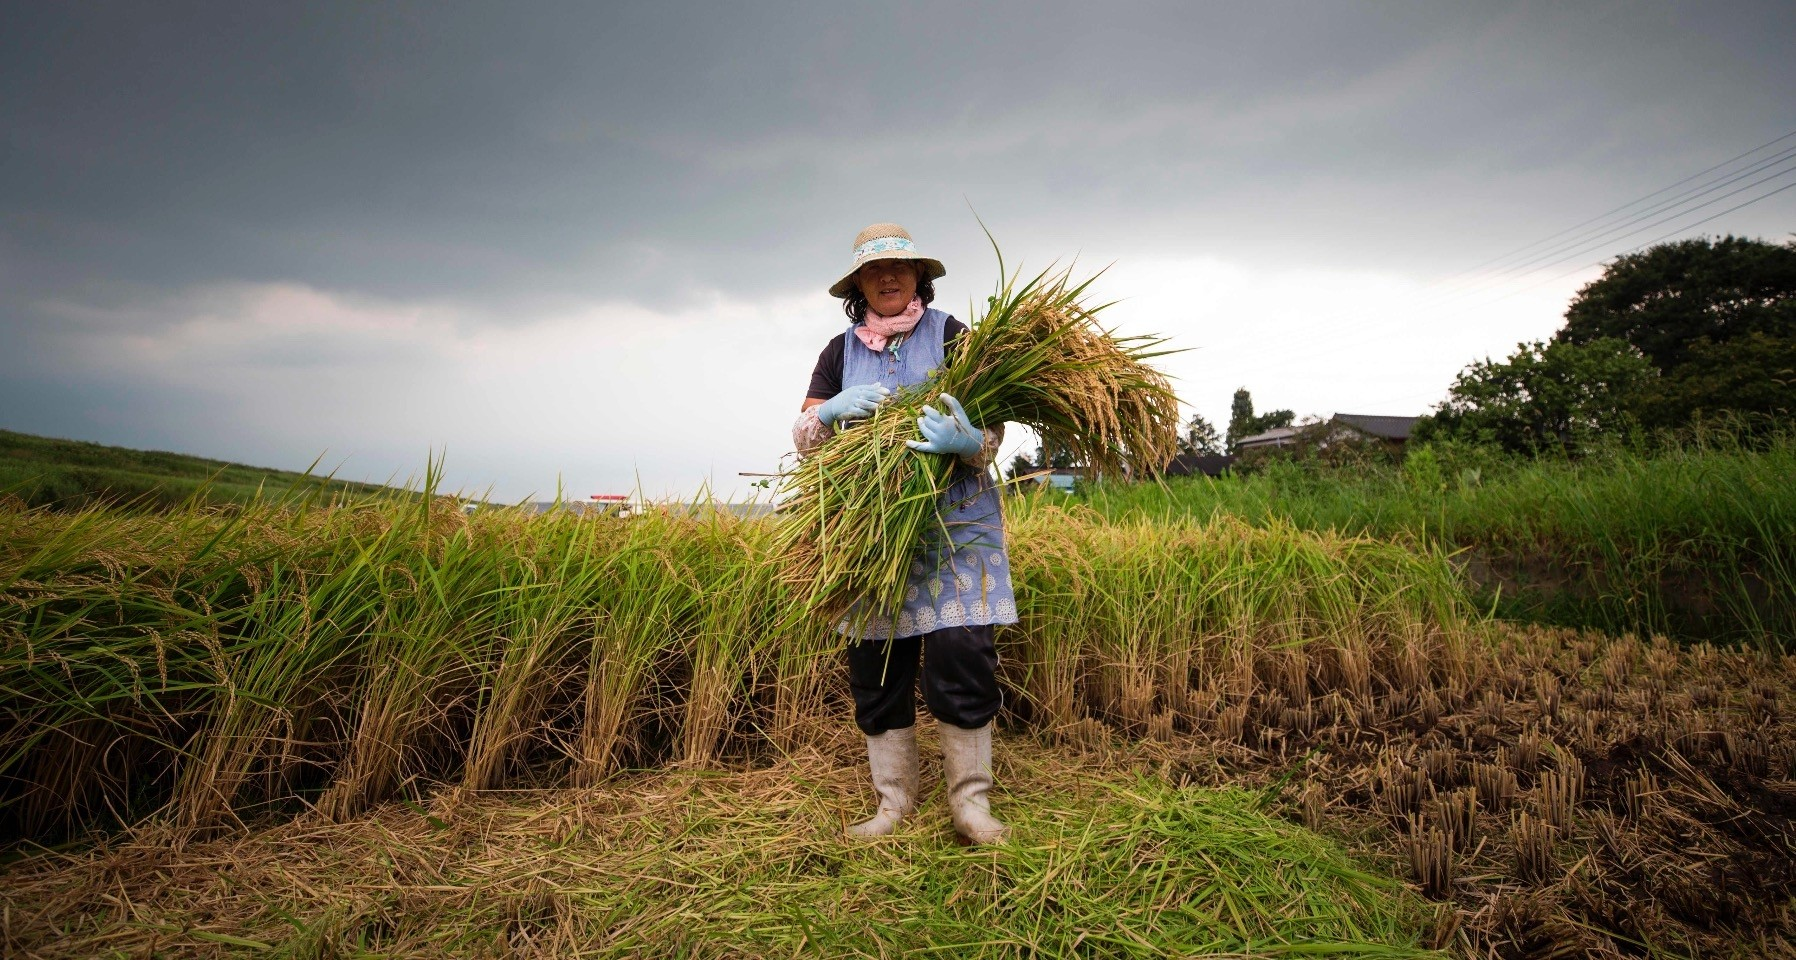 Japanese farmer Mayumi Oya poses with harvested rice plants on a paddy field in Kazo city, Saitama prefecture, Aug. 31.